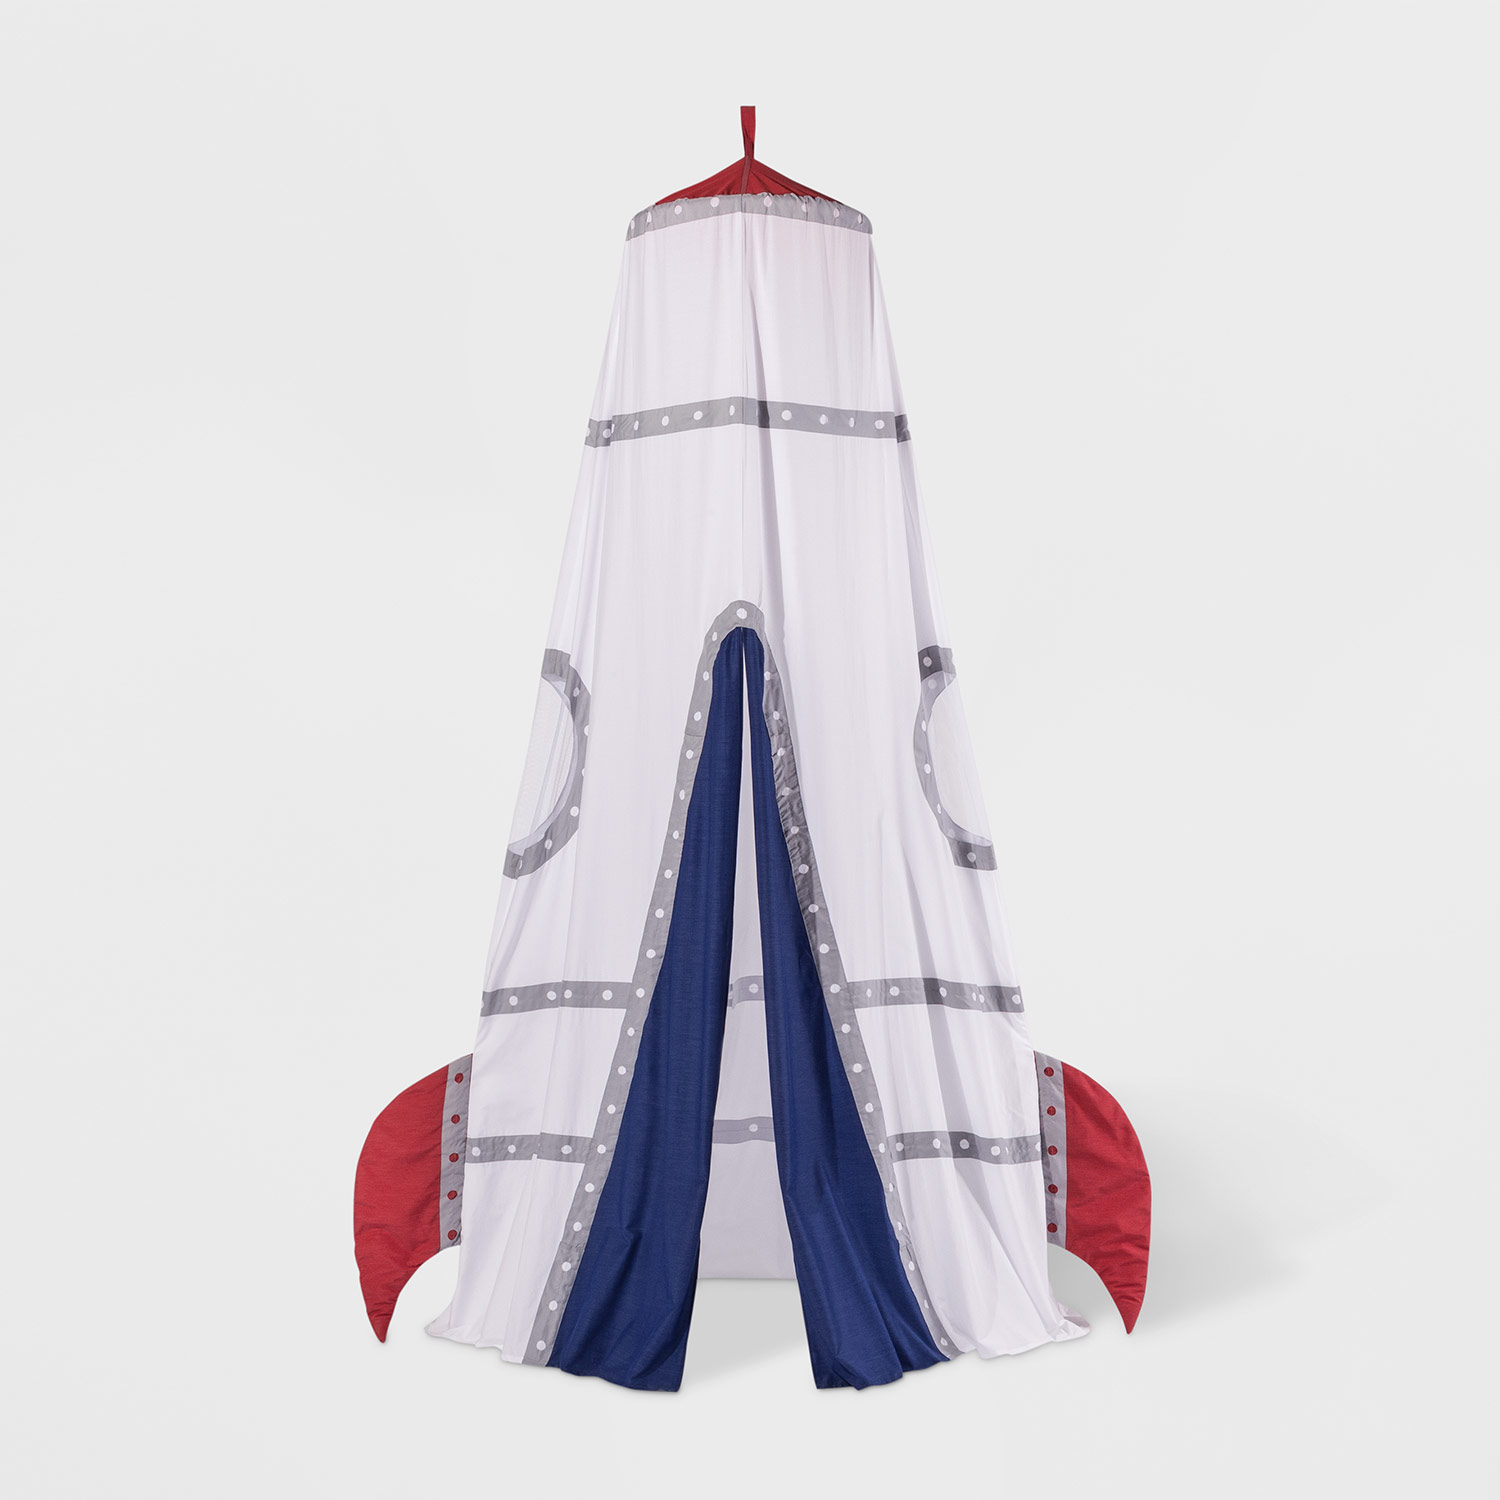 Rocket Bed Canopy